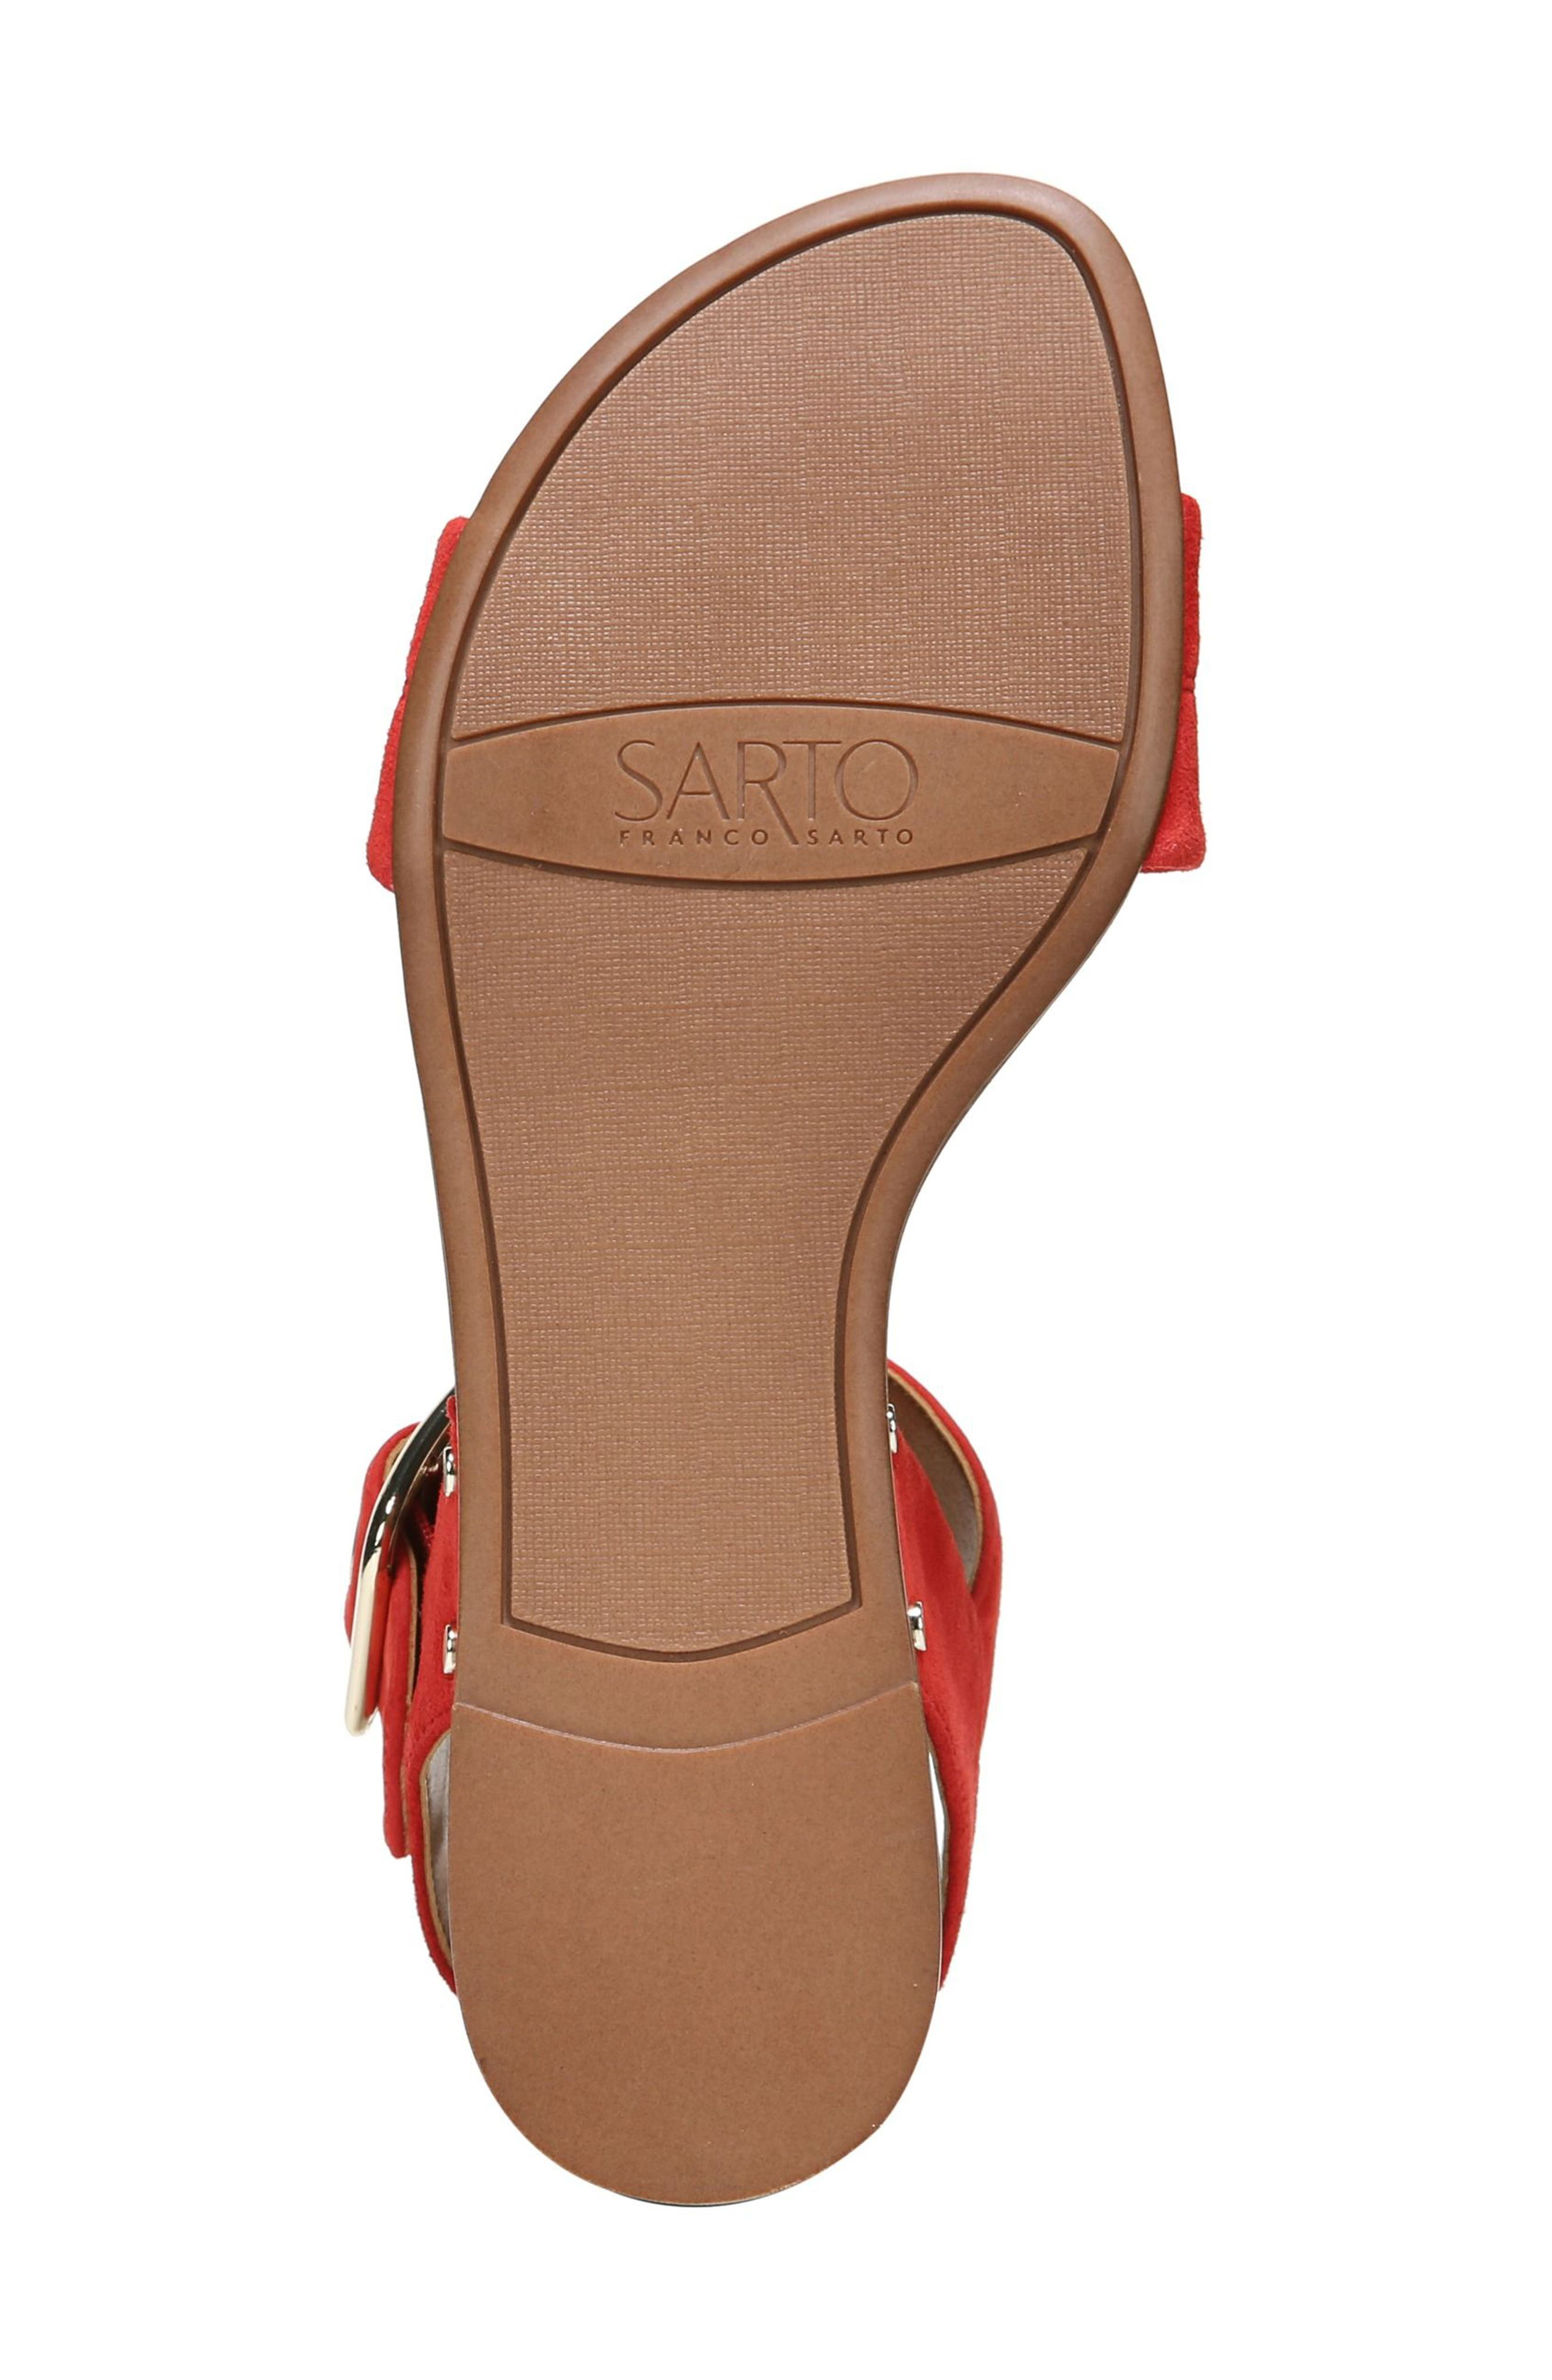 Patterson Low Wedge Sandal,                             Alternate thumbnail 6, color,                             Pop Red Suede